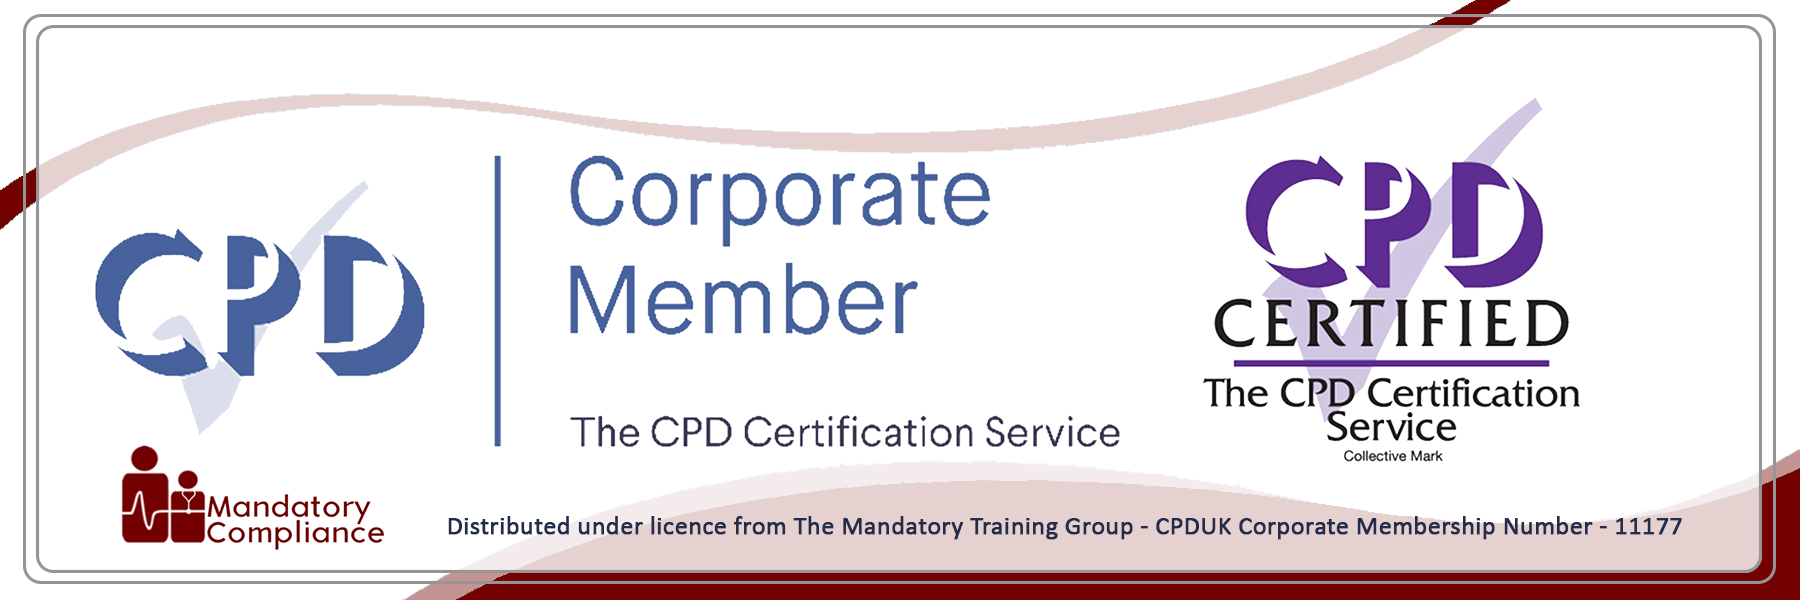 Medicines Management for Nurses & AHPs - Online Training Course - CPD Accredited - Mandatory Compliance UK -